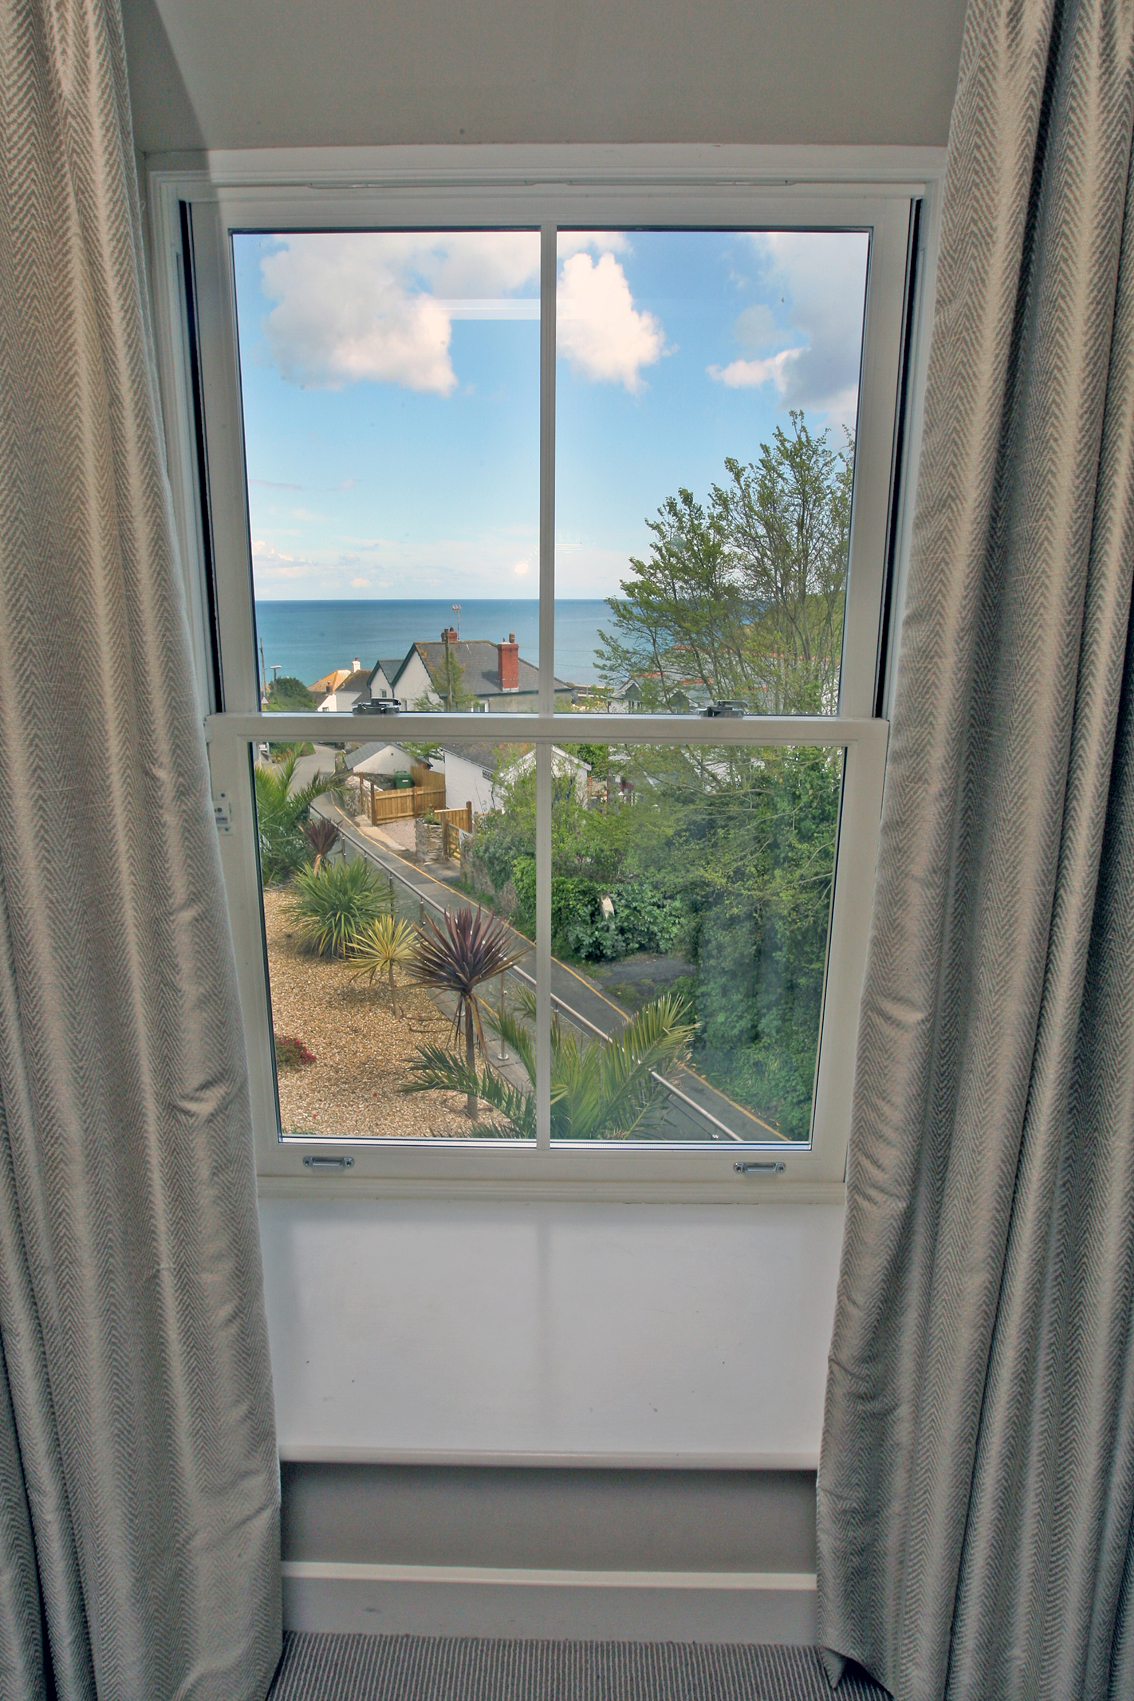 LlawnrocRm11j 16/06/2016 Room 11, a generous dual aspect suite room with sea views and a large bathroom with a separate shower and bath.This suite can be made as a double or twin room.